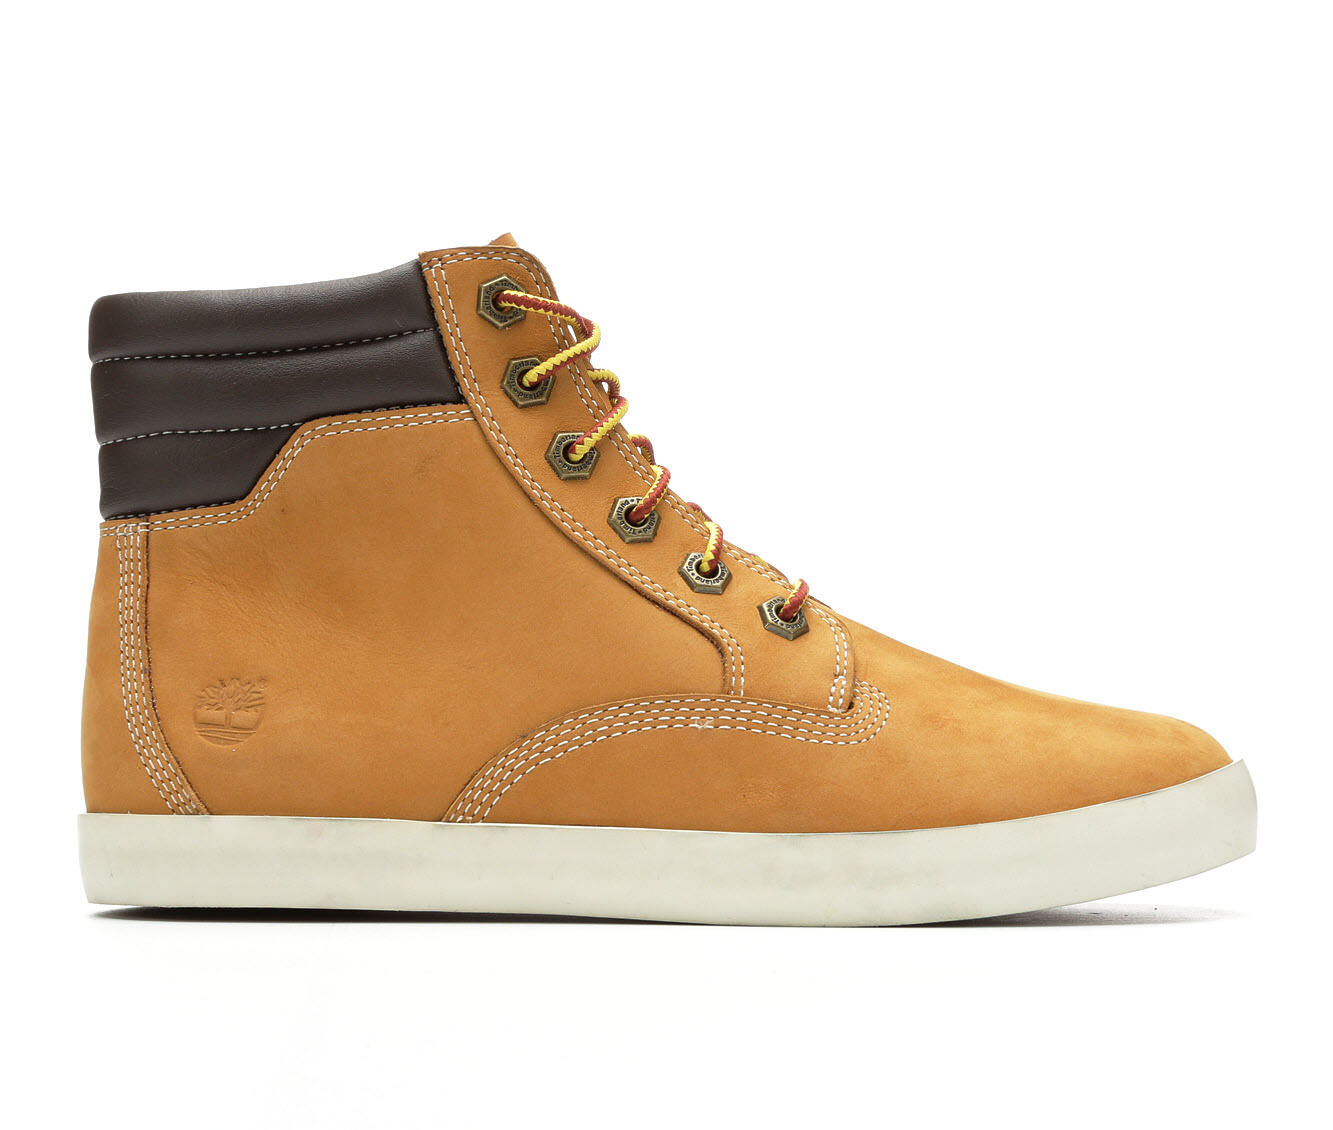 Women's Timberland Dausette Sneaker Boots Wheat